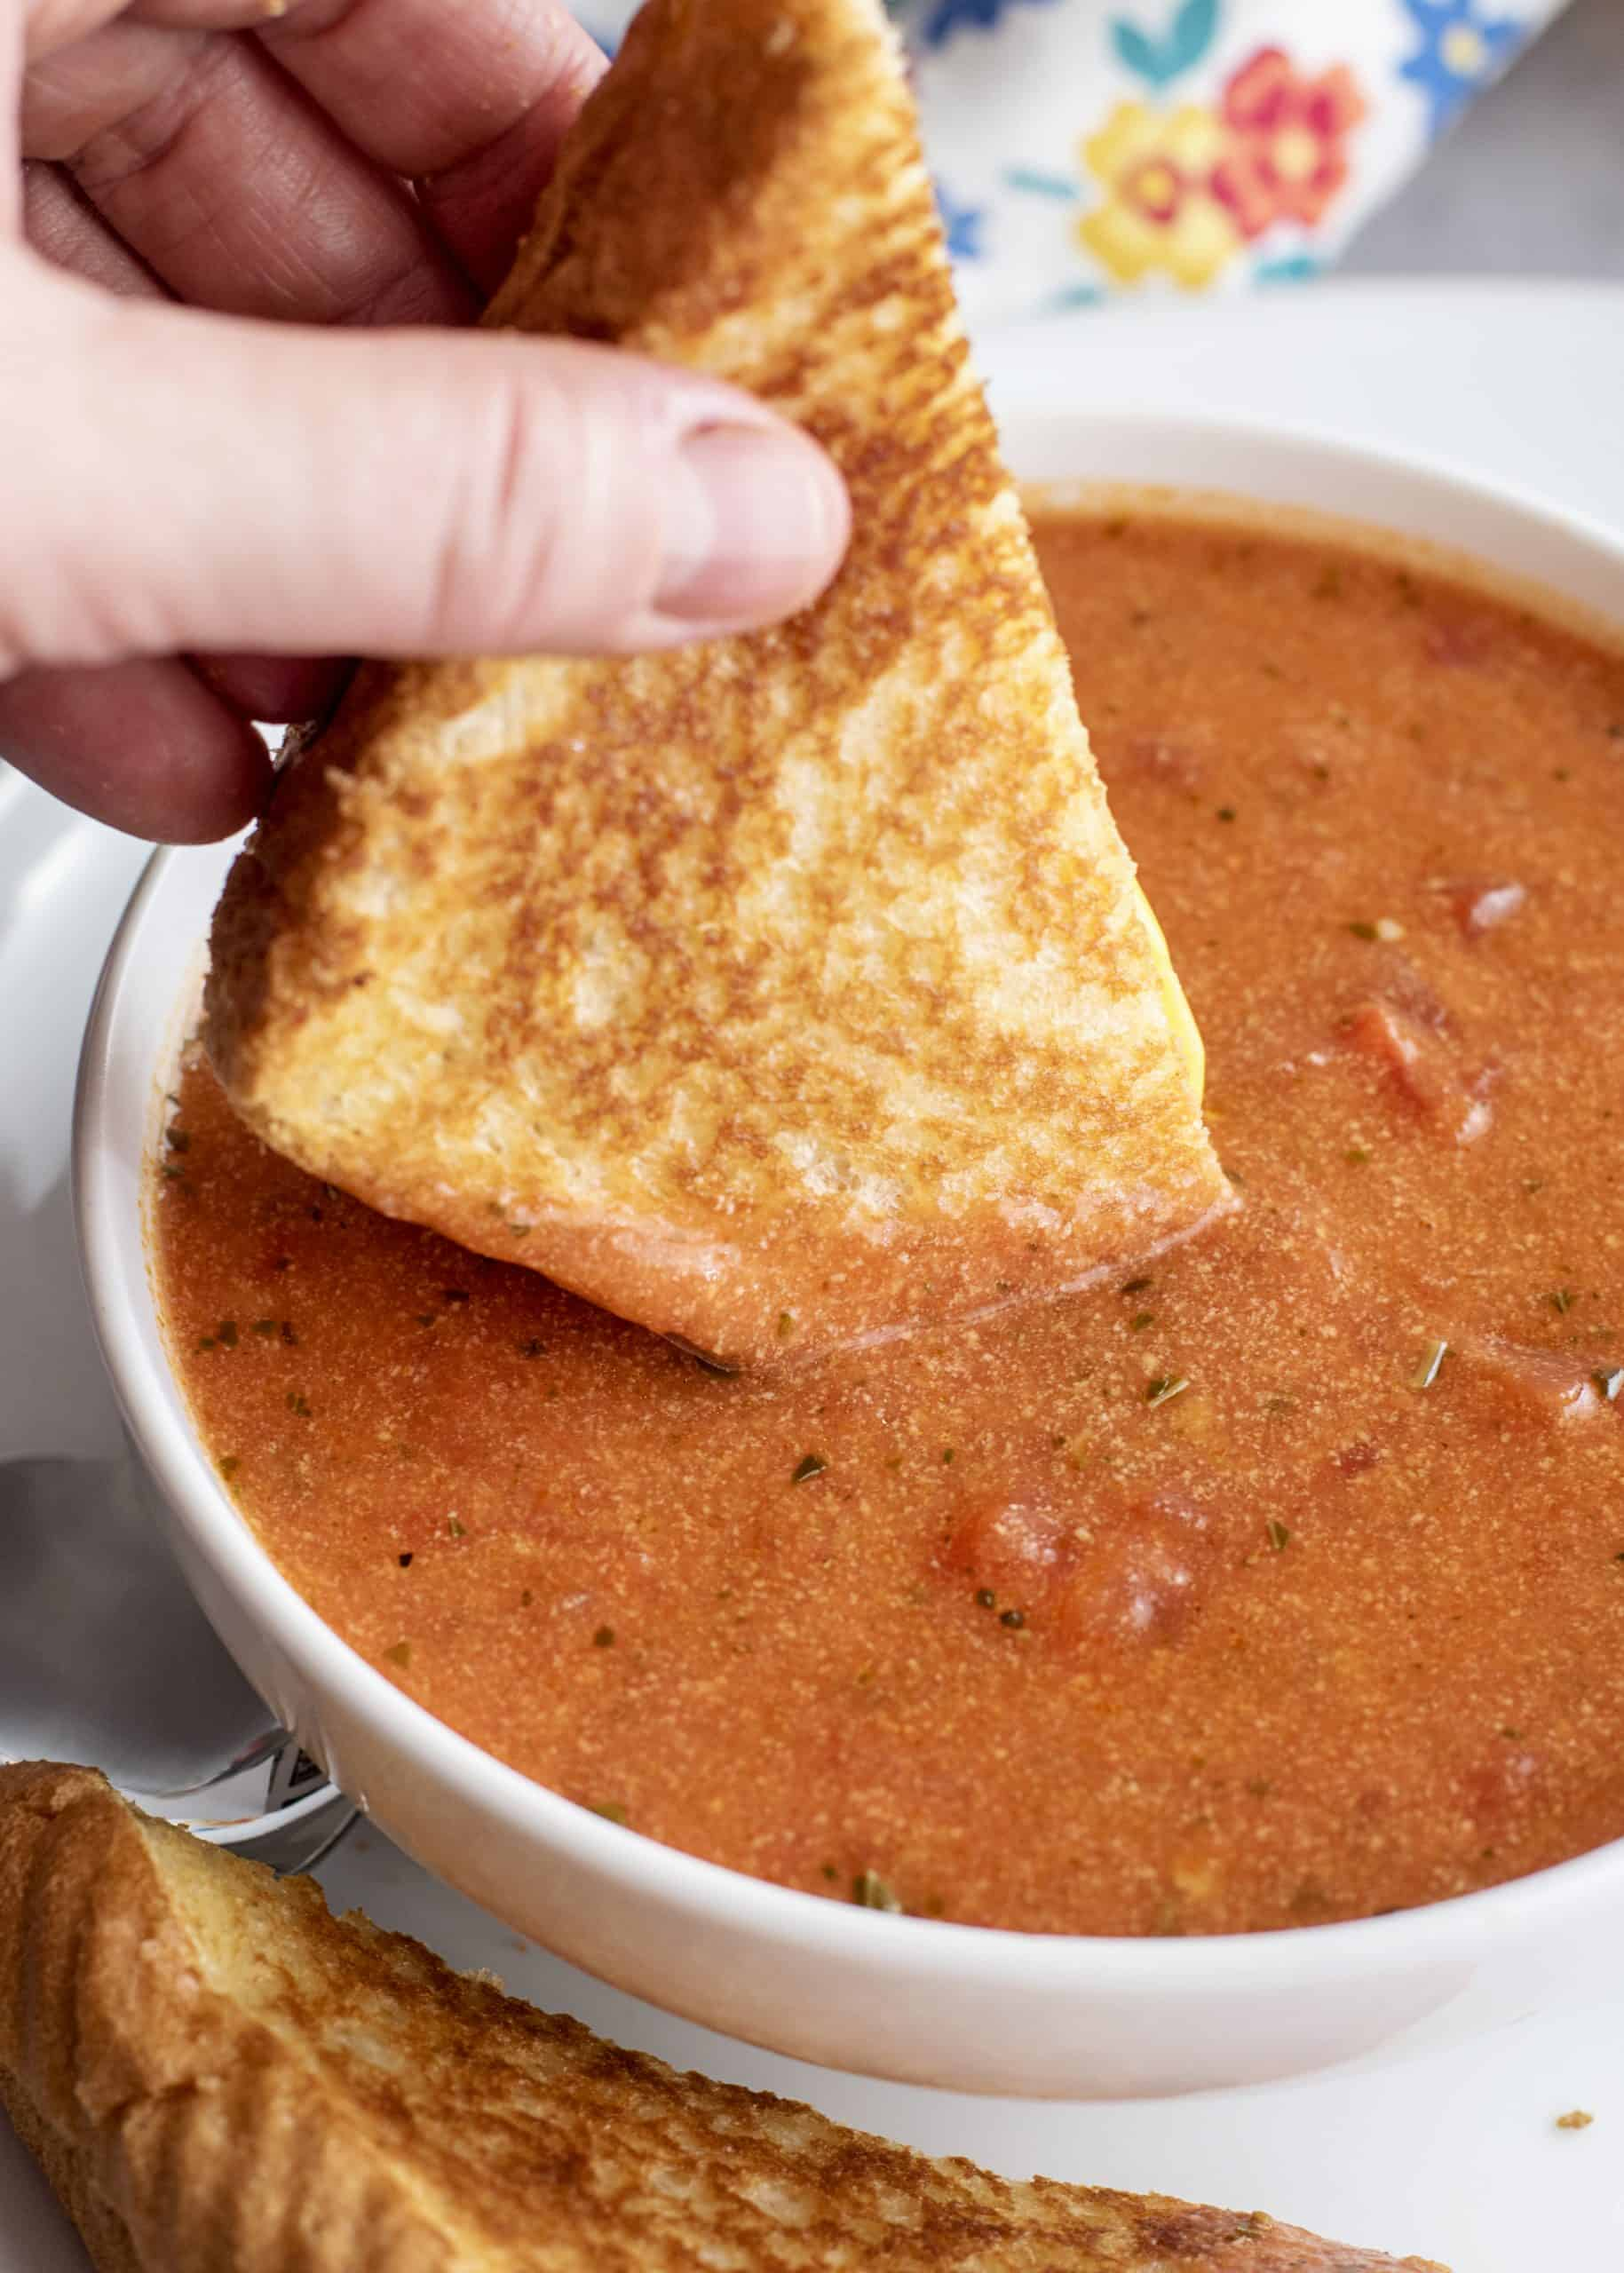 Dipping Grilled cheese into tomato soup